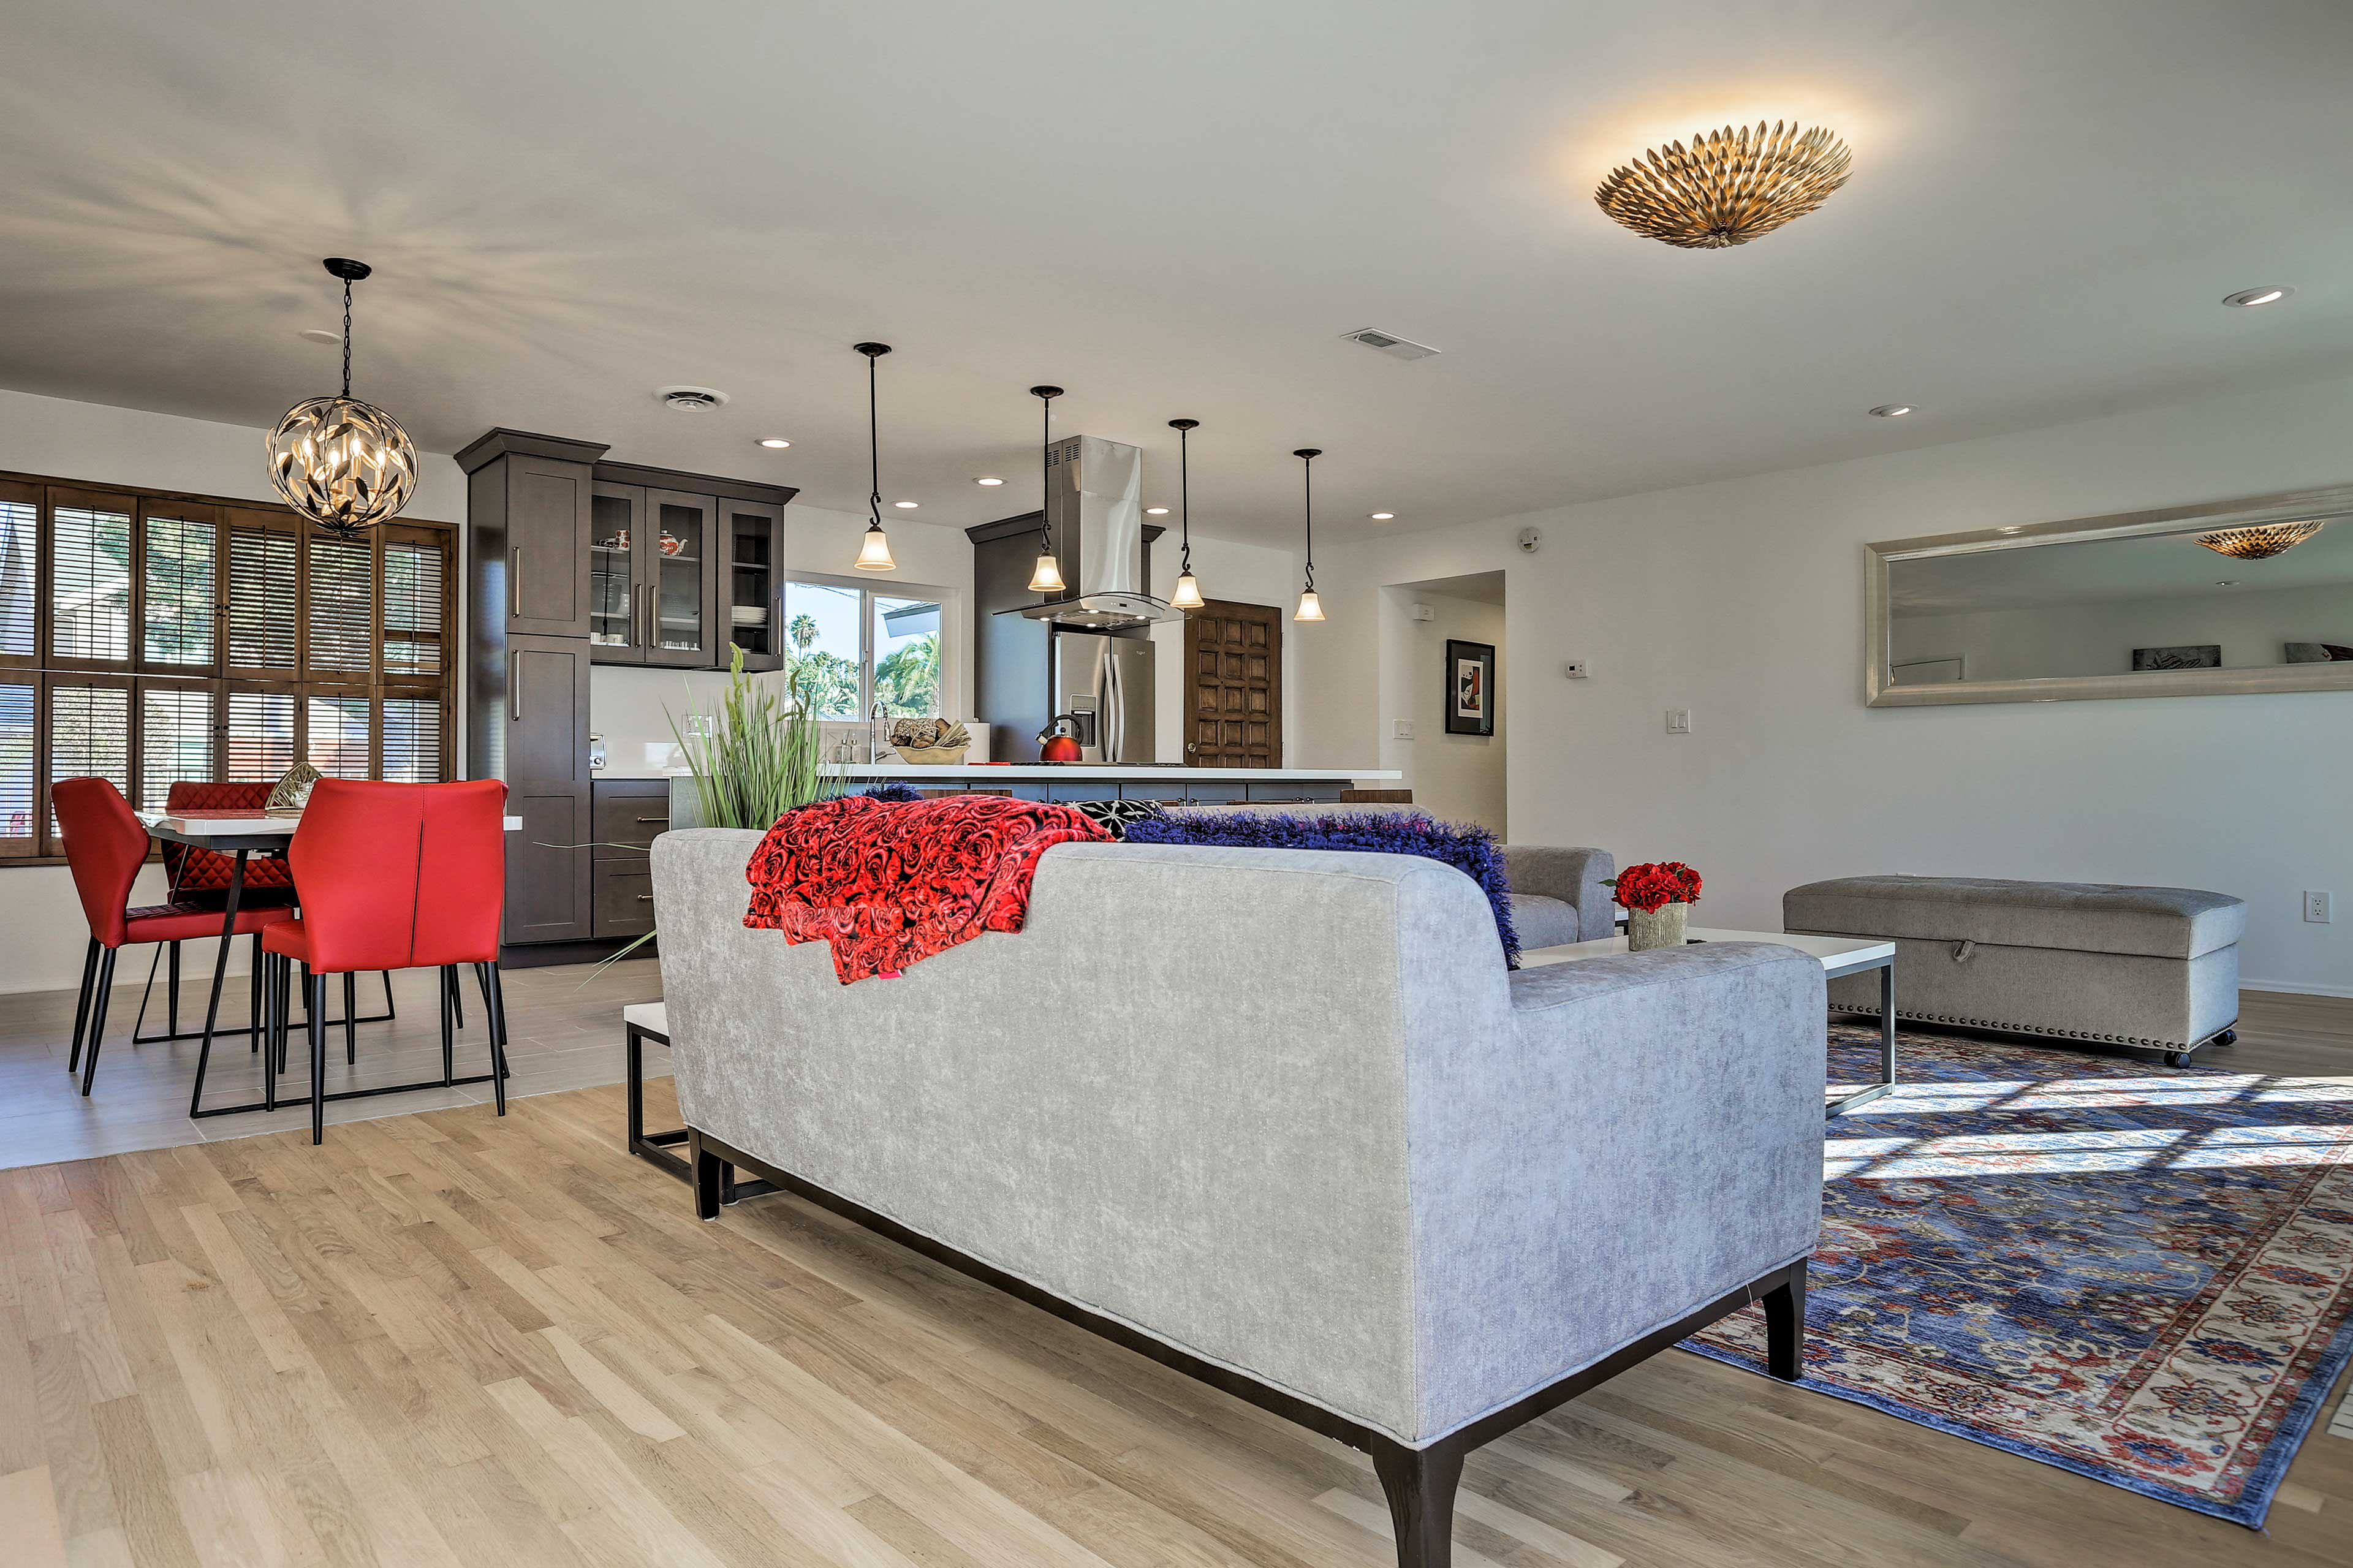 The open living space is perfect for conversing with your friends and family.